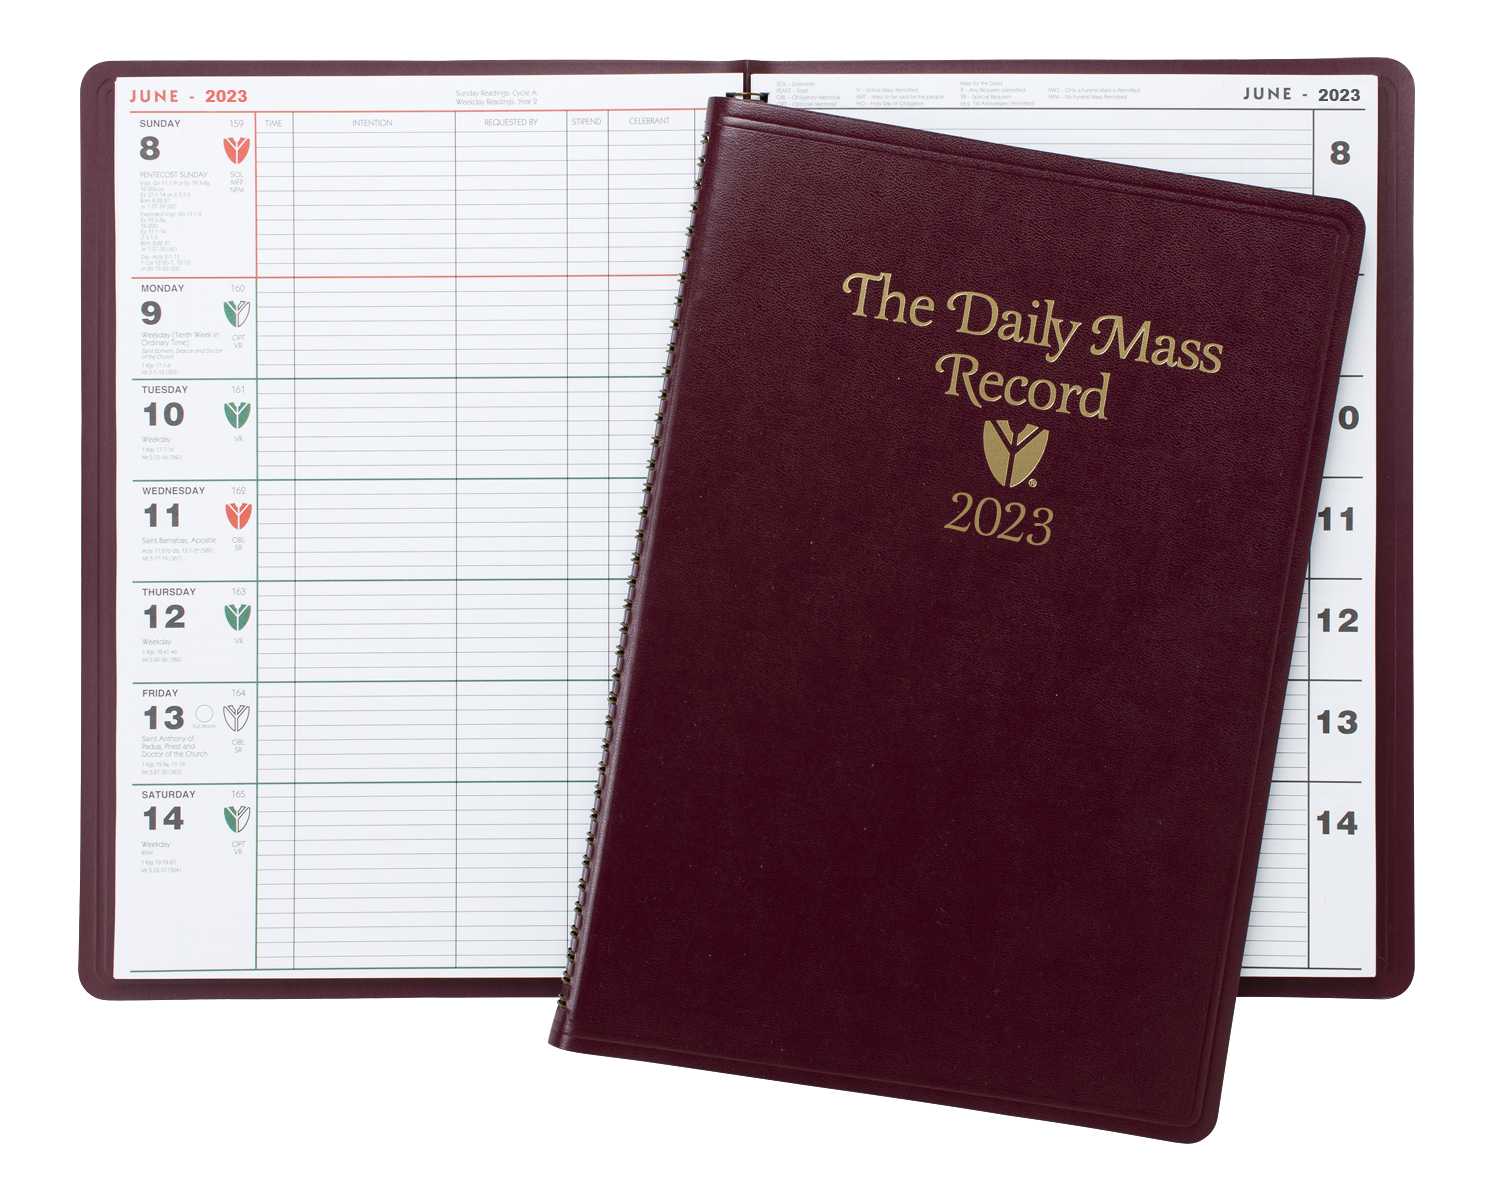 Annual Parish <br />Publications<br />Daily Mass Record